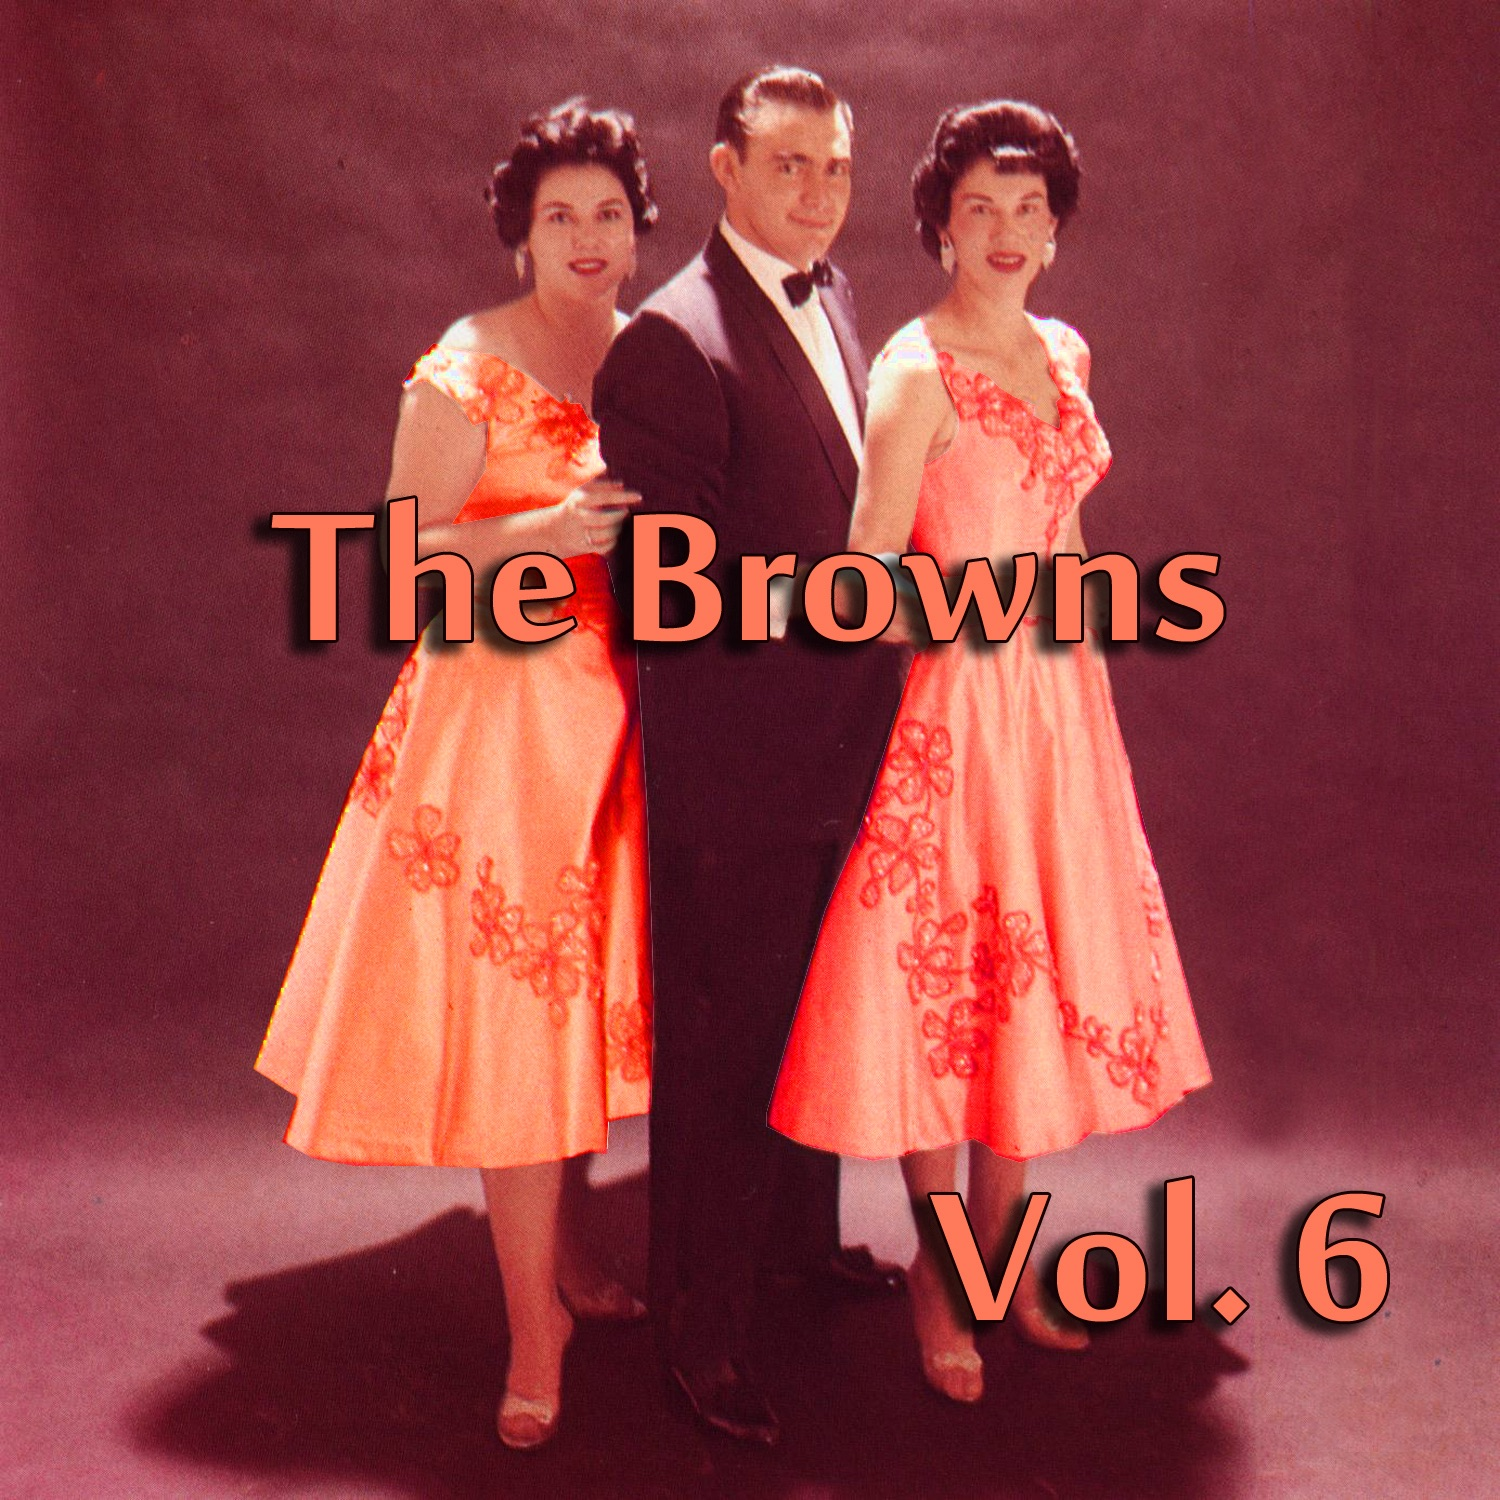 The Browns, Vol. 6